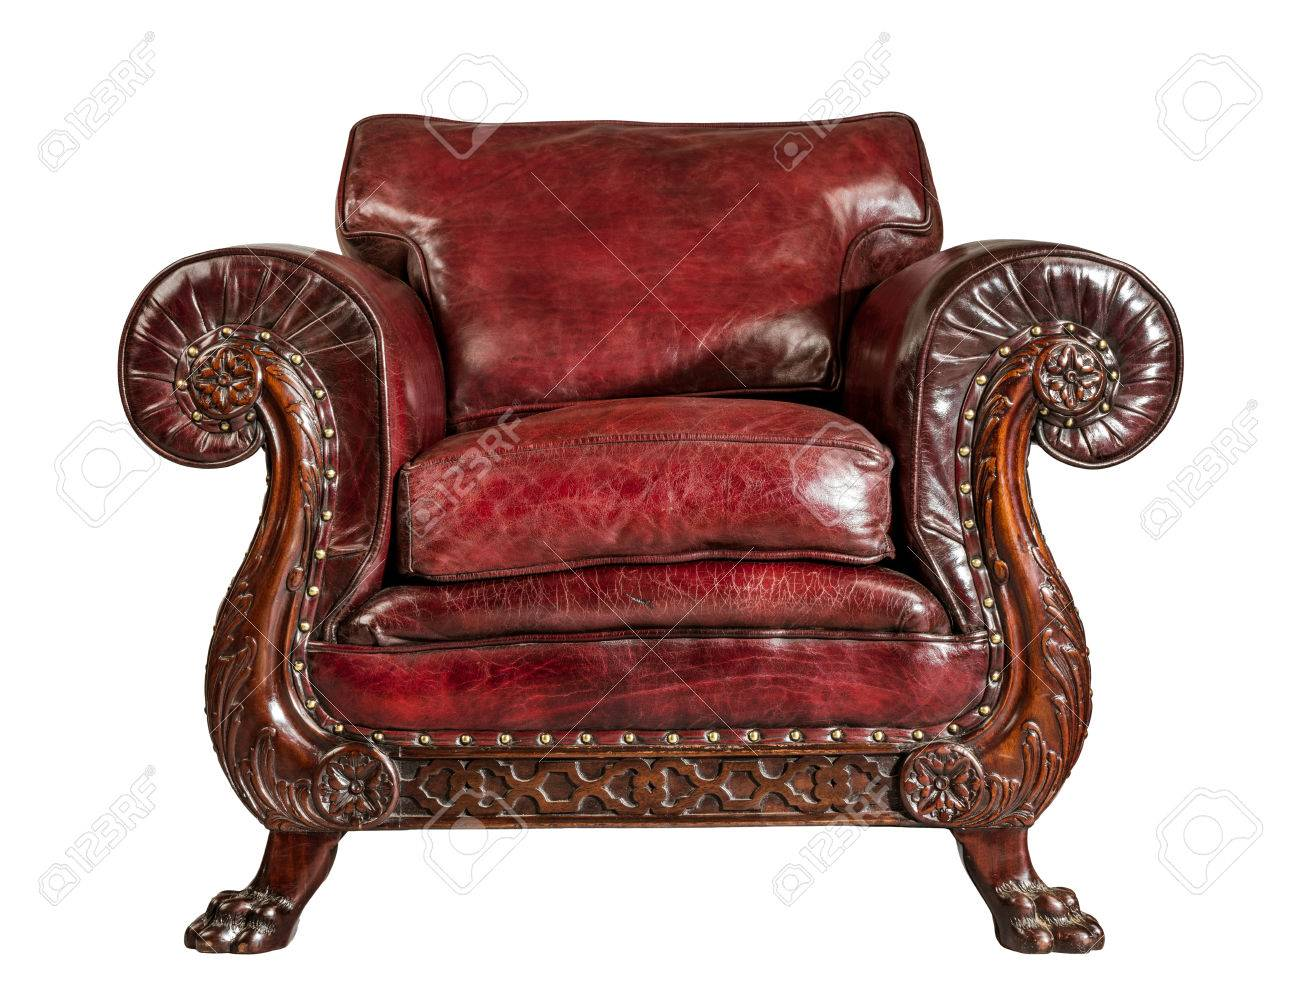 old comfortable antique red leather arm chair Stock Photo - 83668673 - Old Comfortable Antique Red Leather Arm Chair Stock Photo, Picture